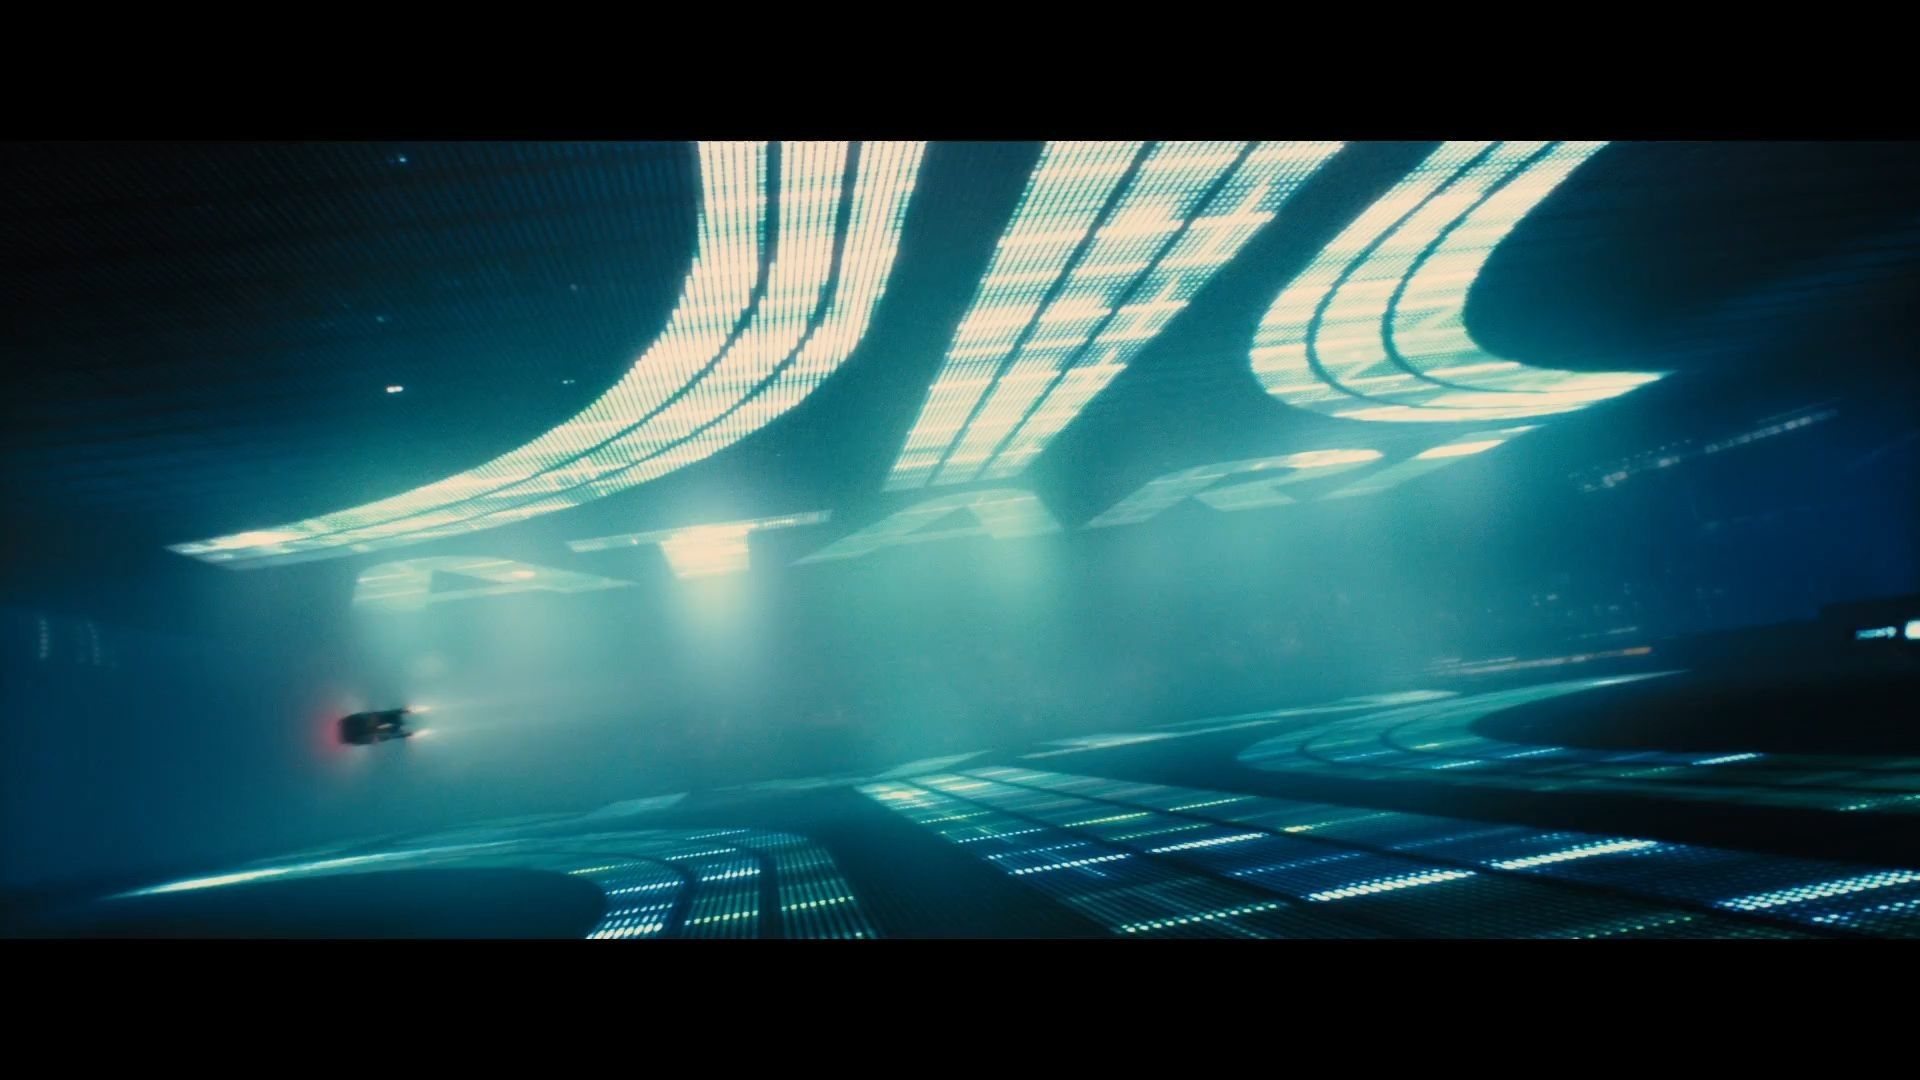 Res 1920x1080 Blade Runner 2049 Wallpapers From Trailer Blade Runner Wallpaper Blade Runner Blade Runner 2049